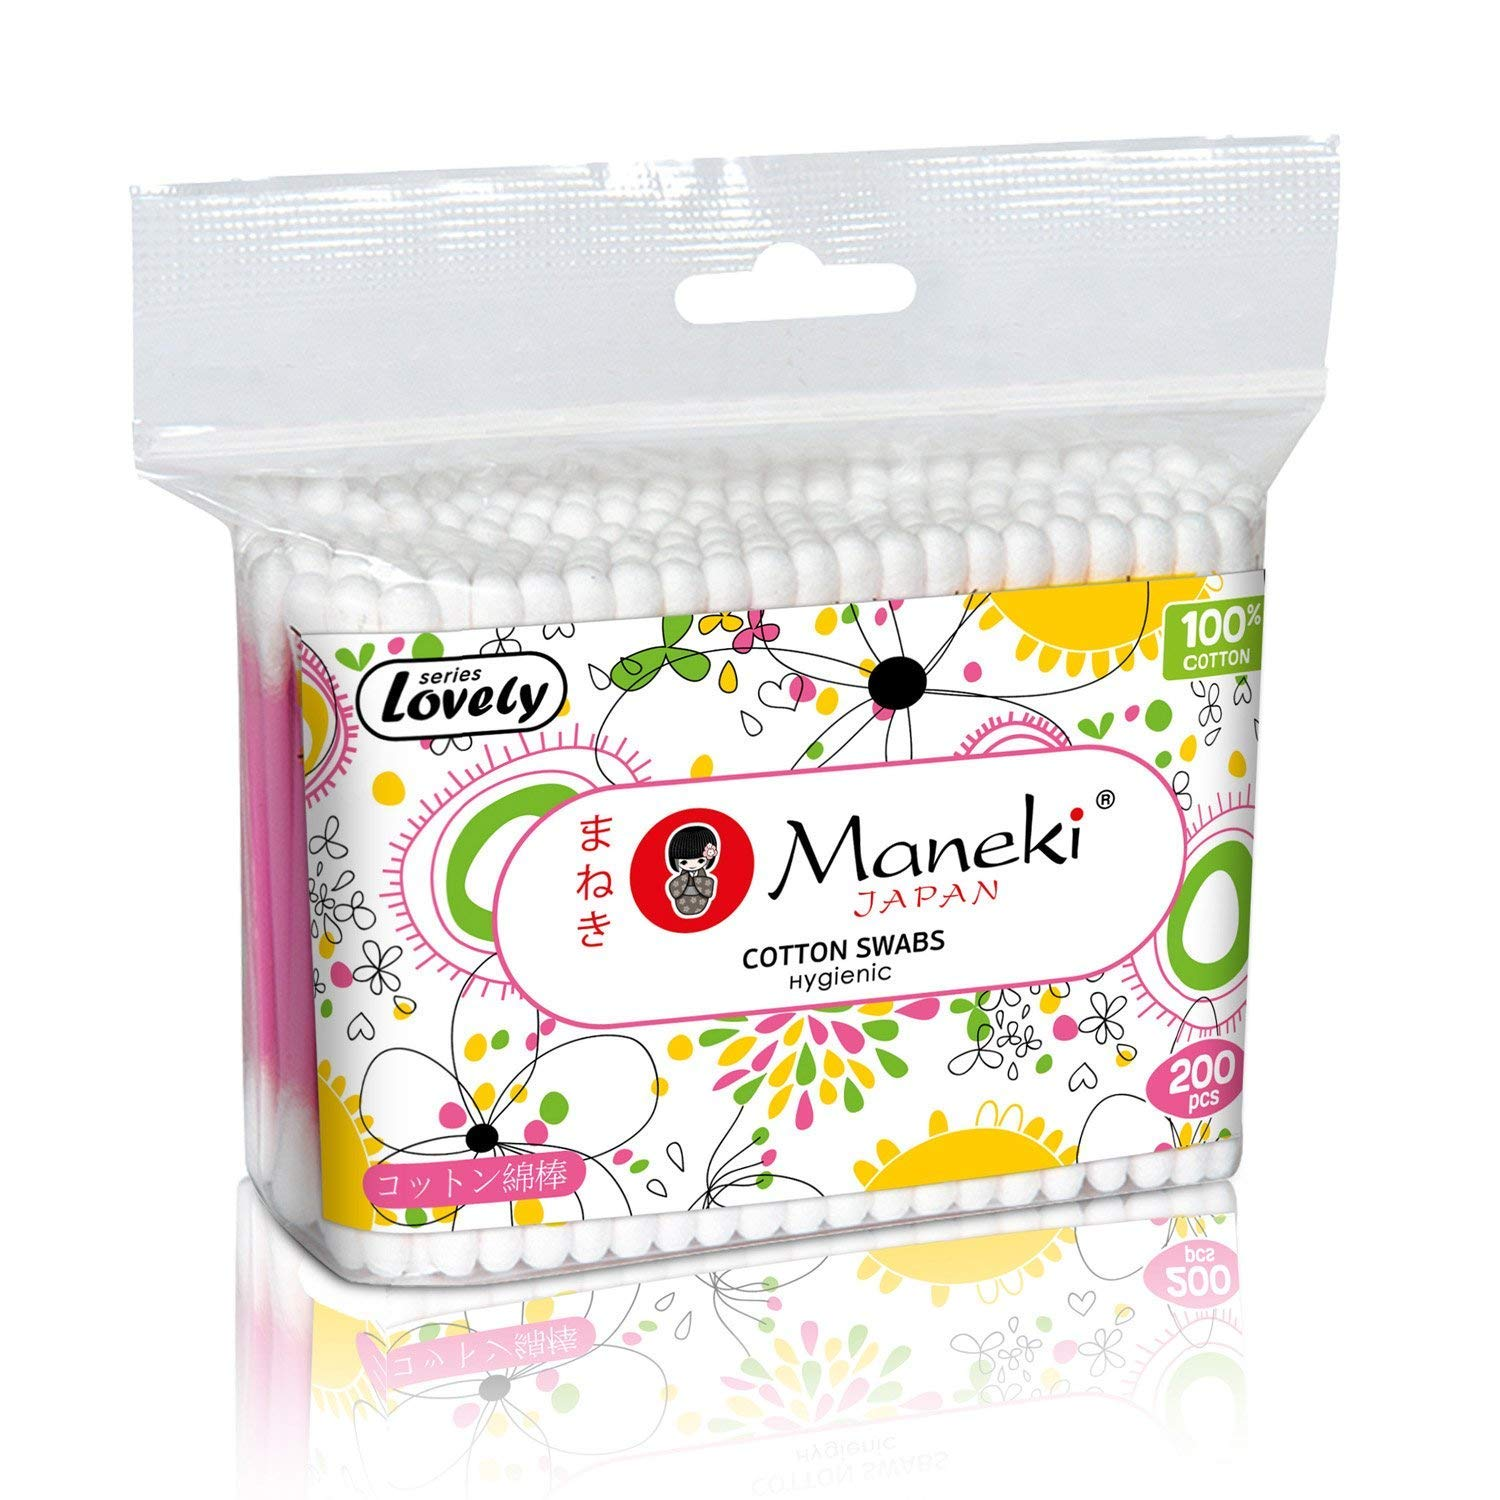 Maneki Lovely 100% Cotton Buds, Double Head, Round Applicators, Premium Quality, 200 Pieces